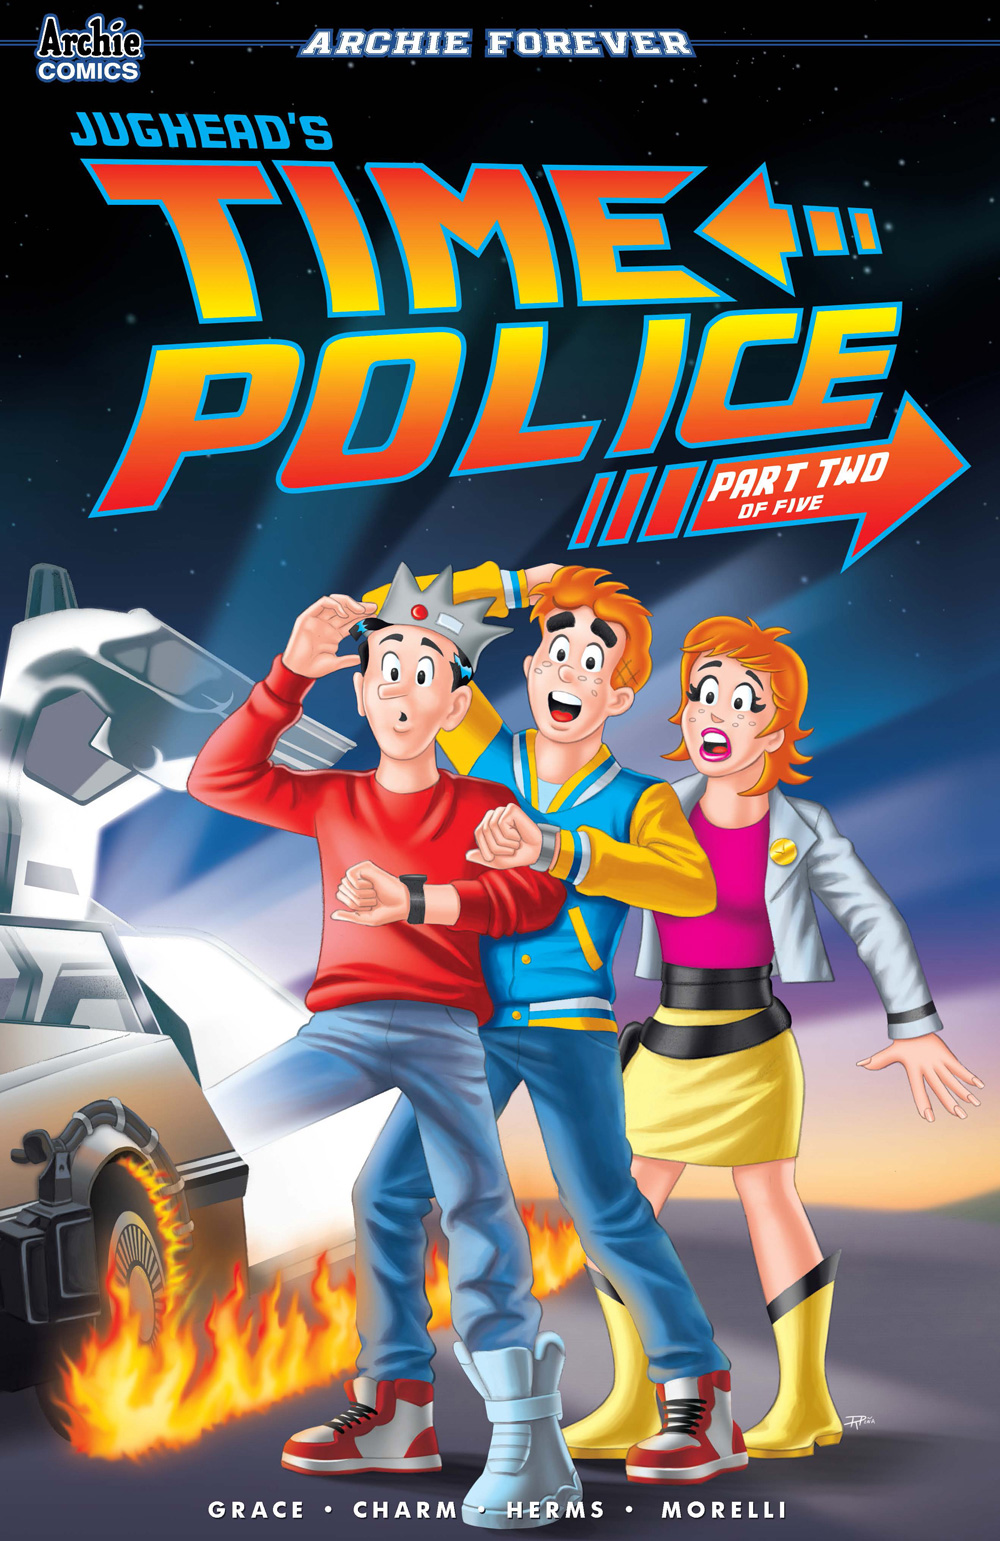 A variant cover for Jughead's Time Police #2.